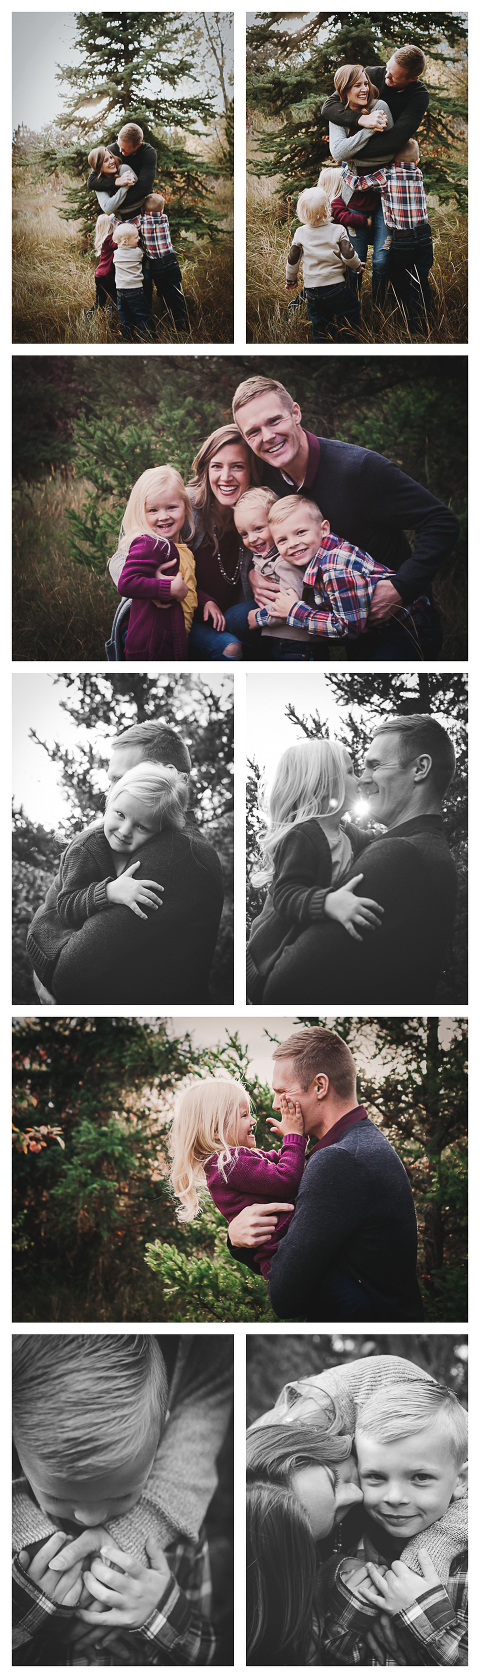 Robertson Family, Lifestyle session captured by Hailey Haberman, Ellensburg, WA